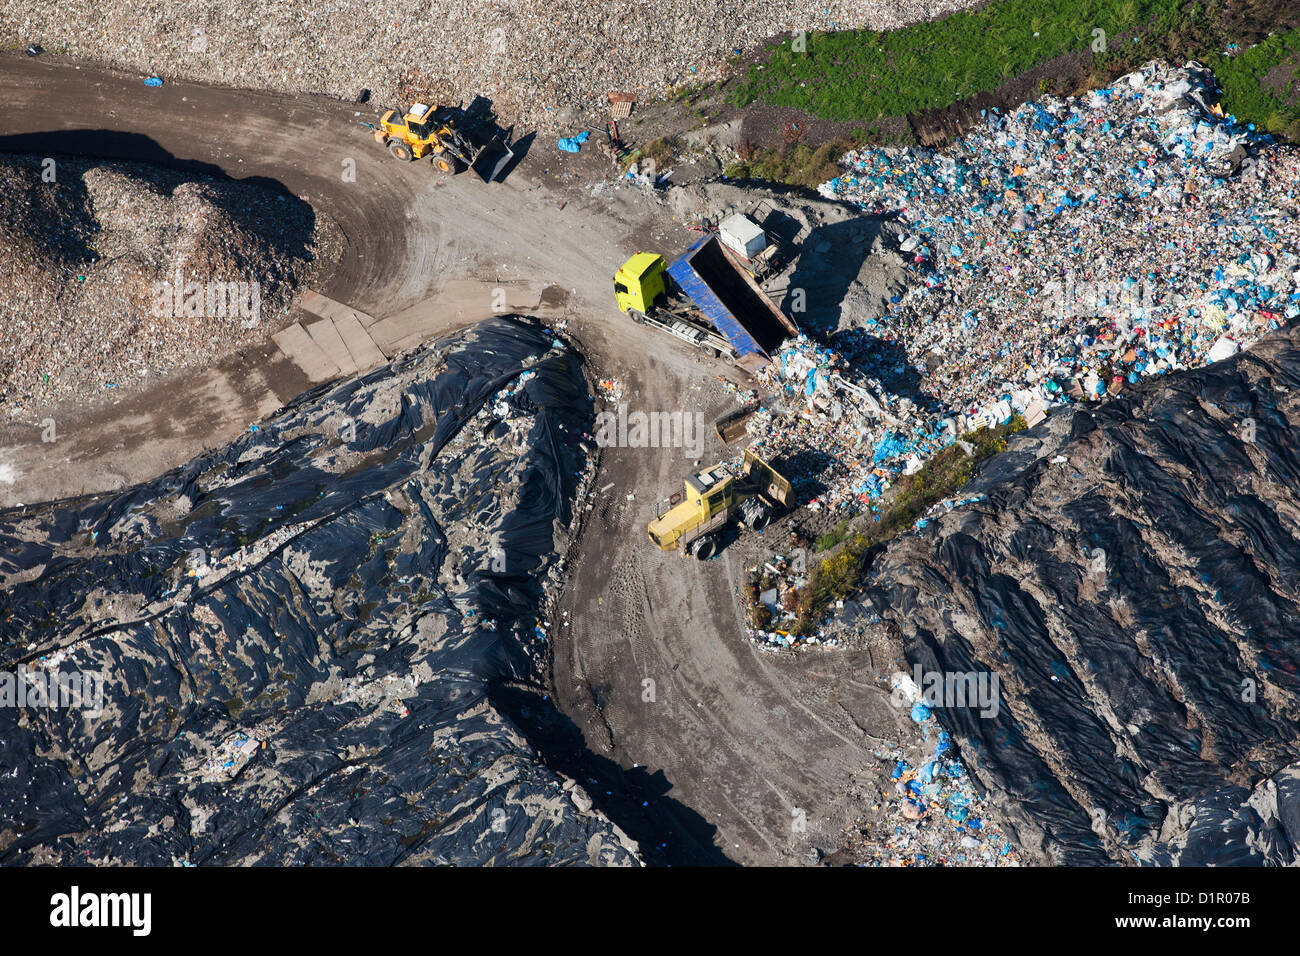 The Netherlands, Hengelo, waste incineration company. Aerial. - Stock Image